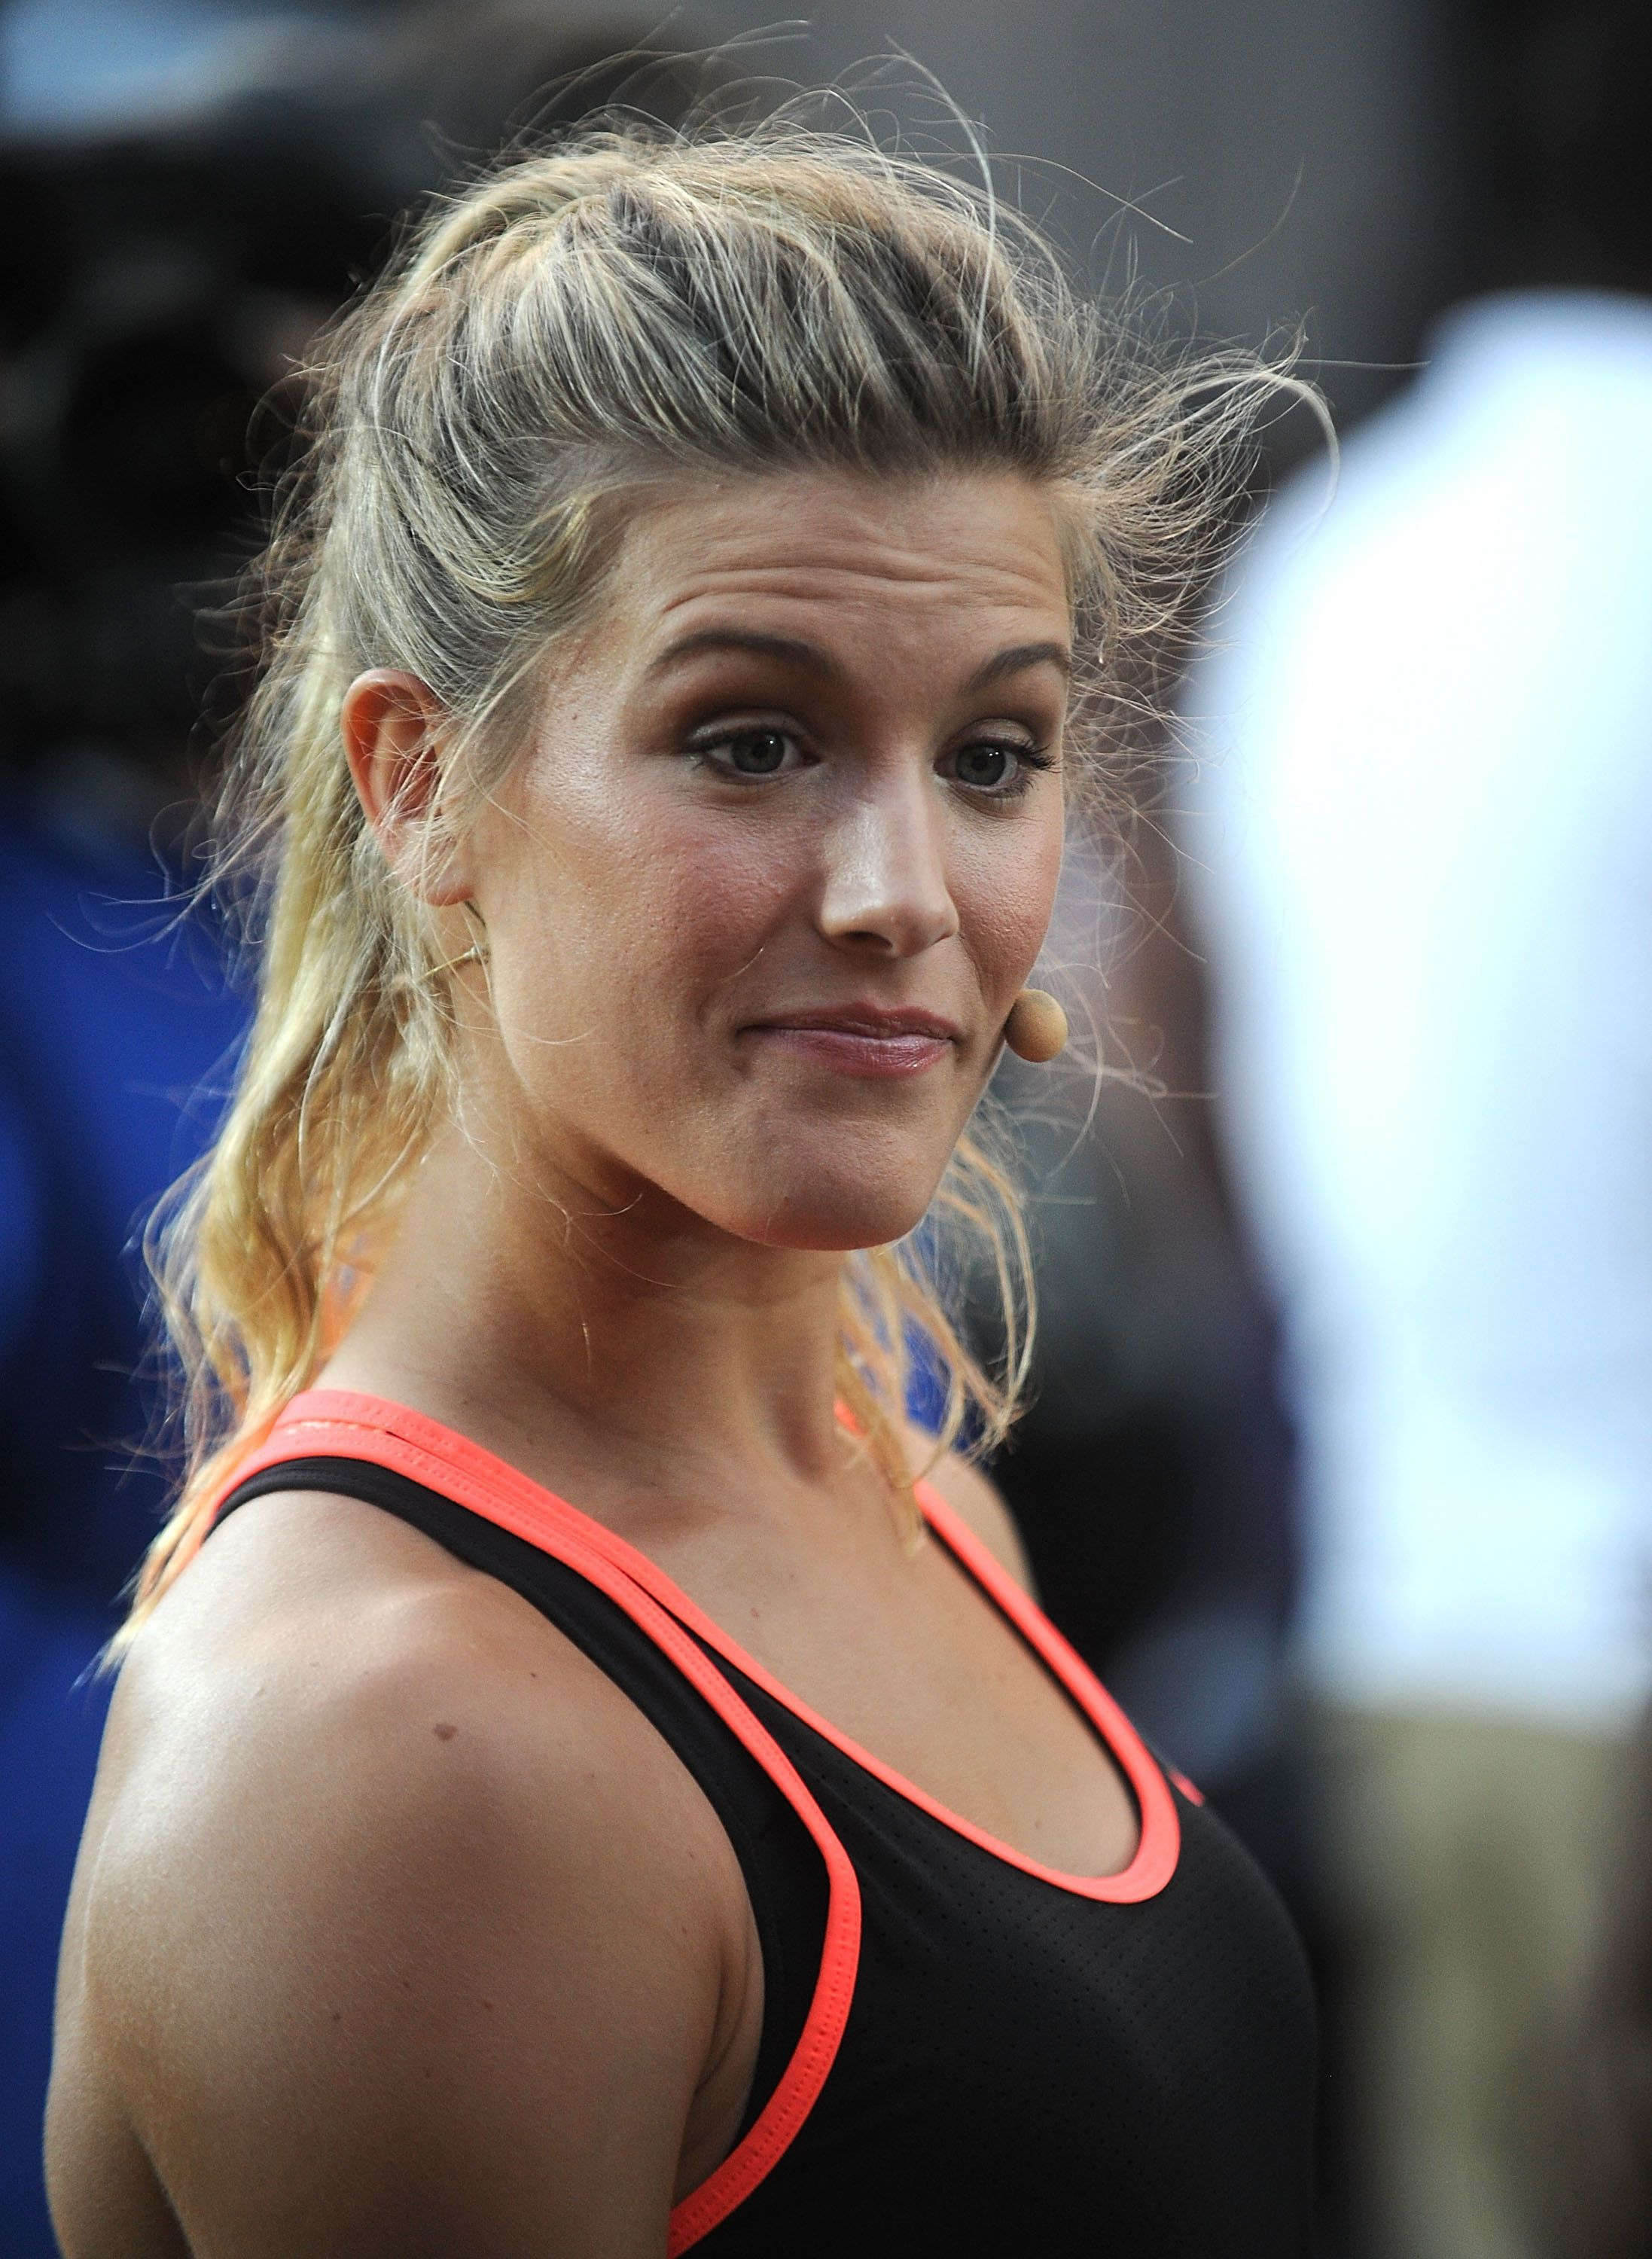 Tennis player Eugenie Bouchard, 22, was positive the Atlanta Falcons would win.